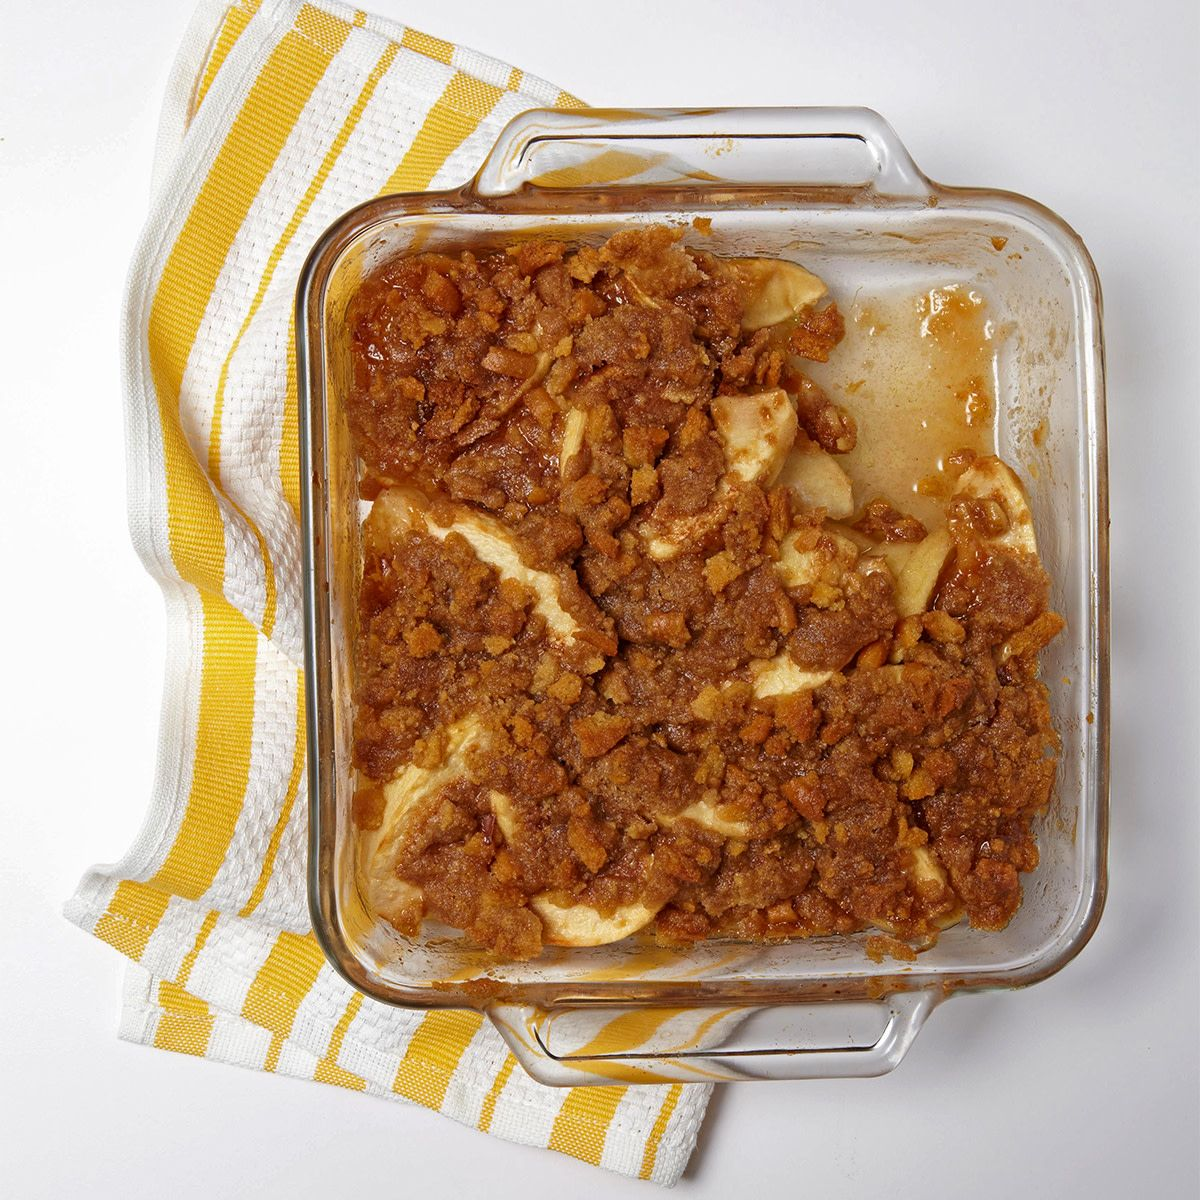 Apple Crisp Recipe Girl scout cookies recipes, Apple